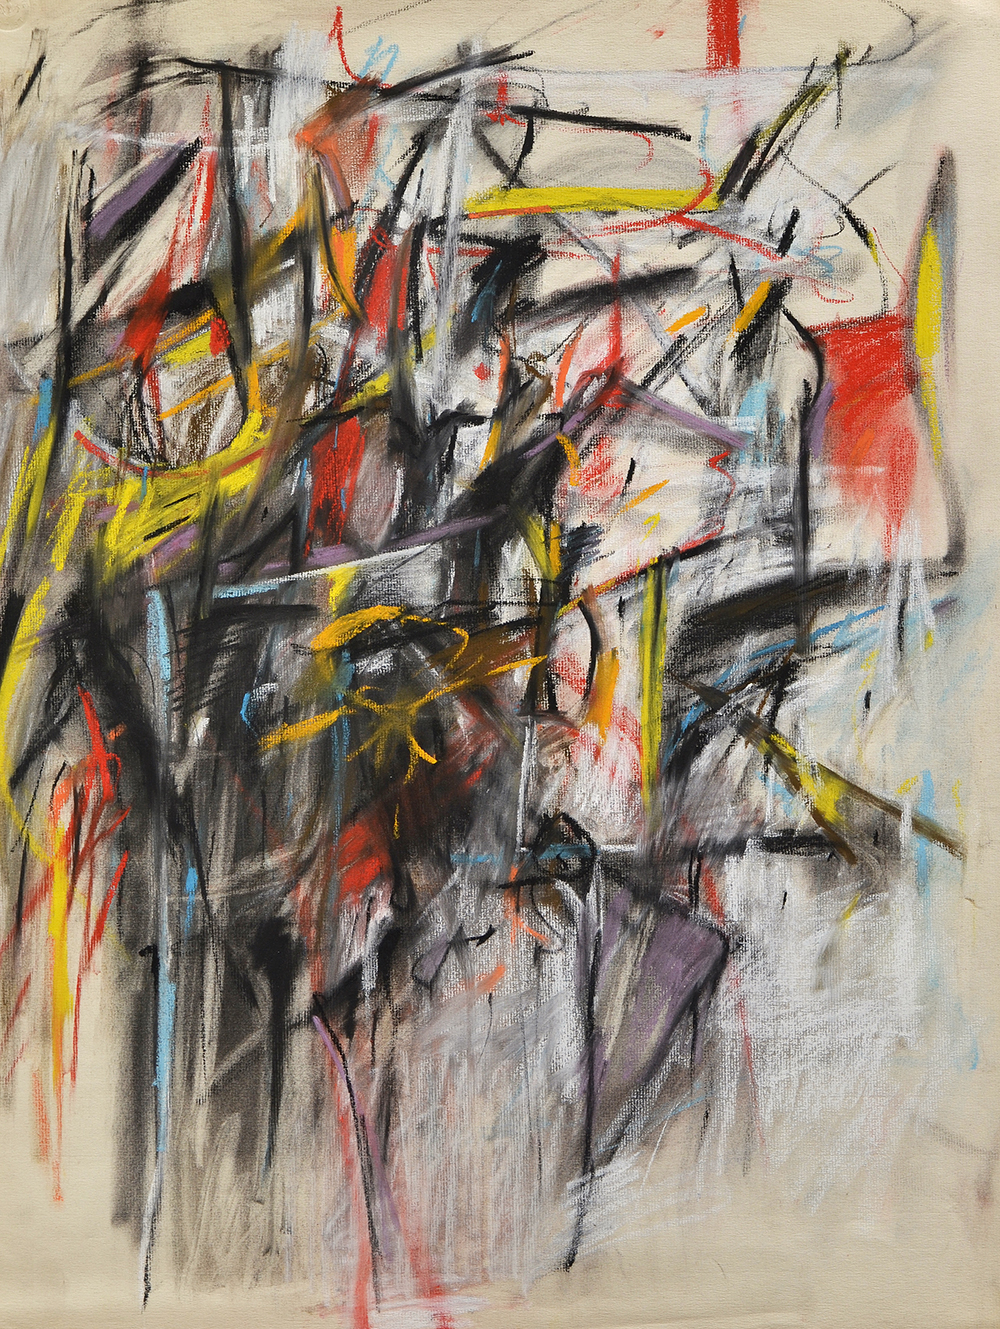 Untitled,   Pastel and charcoal on Strathmore laid paper, c.1955, 25 x 19 inches